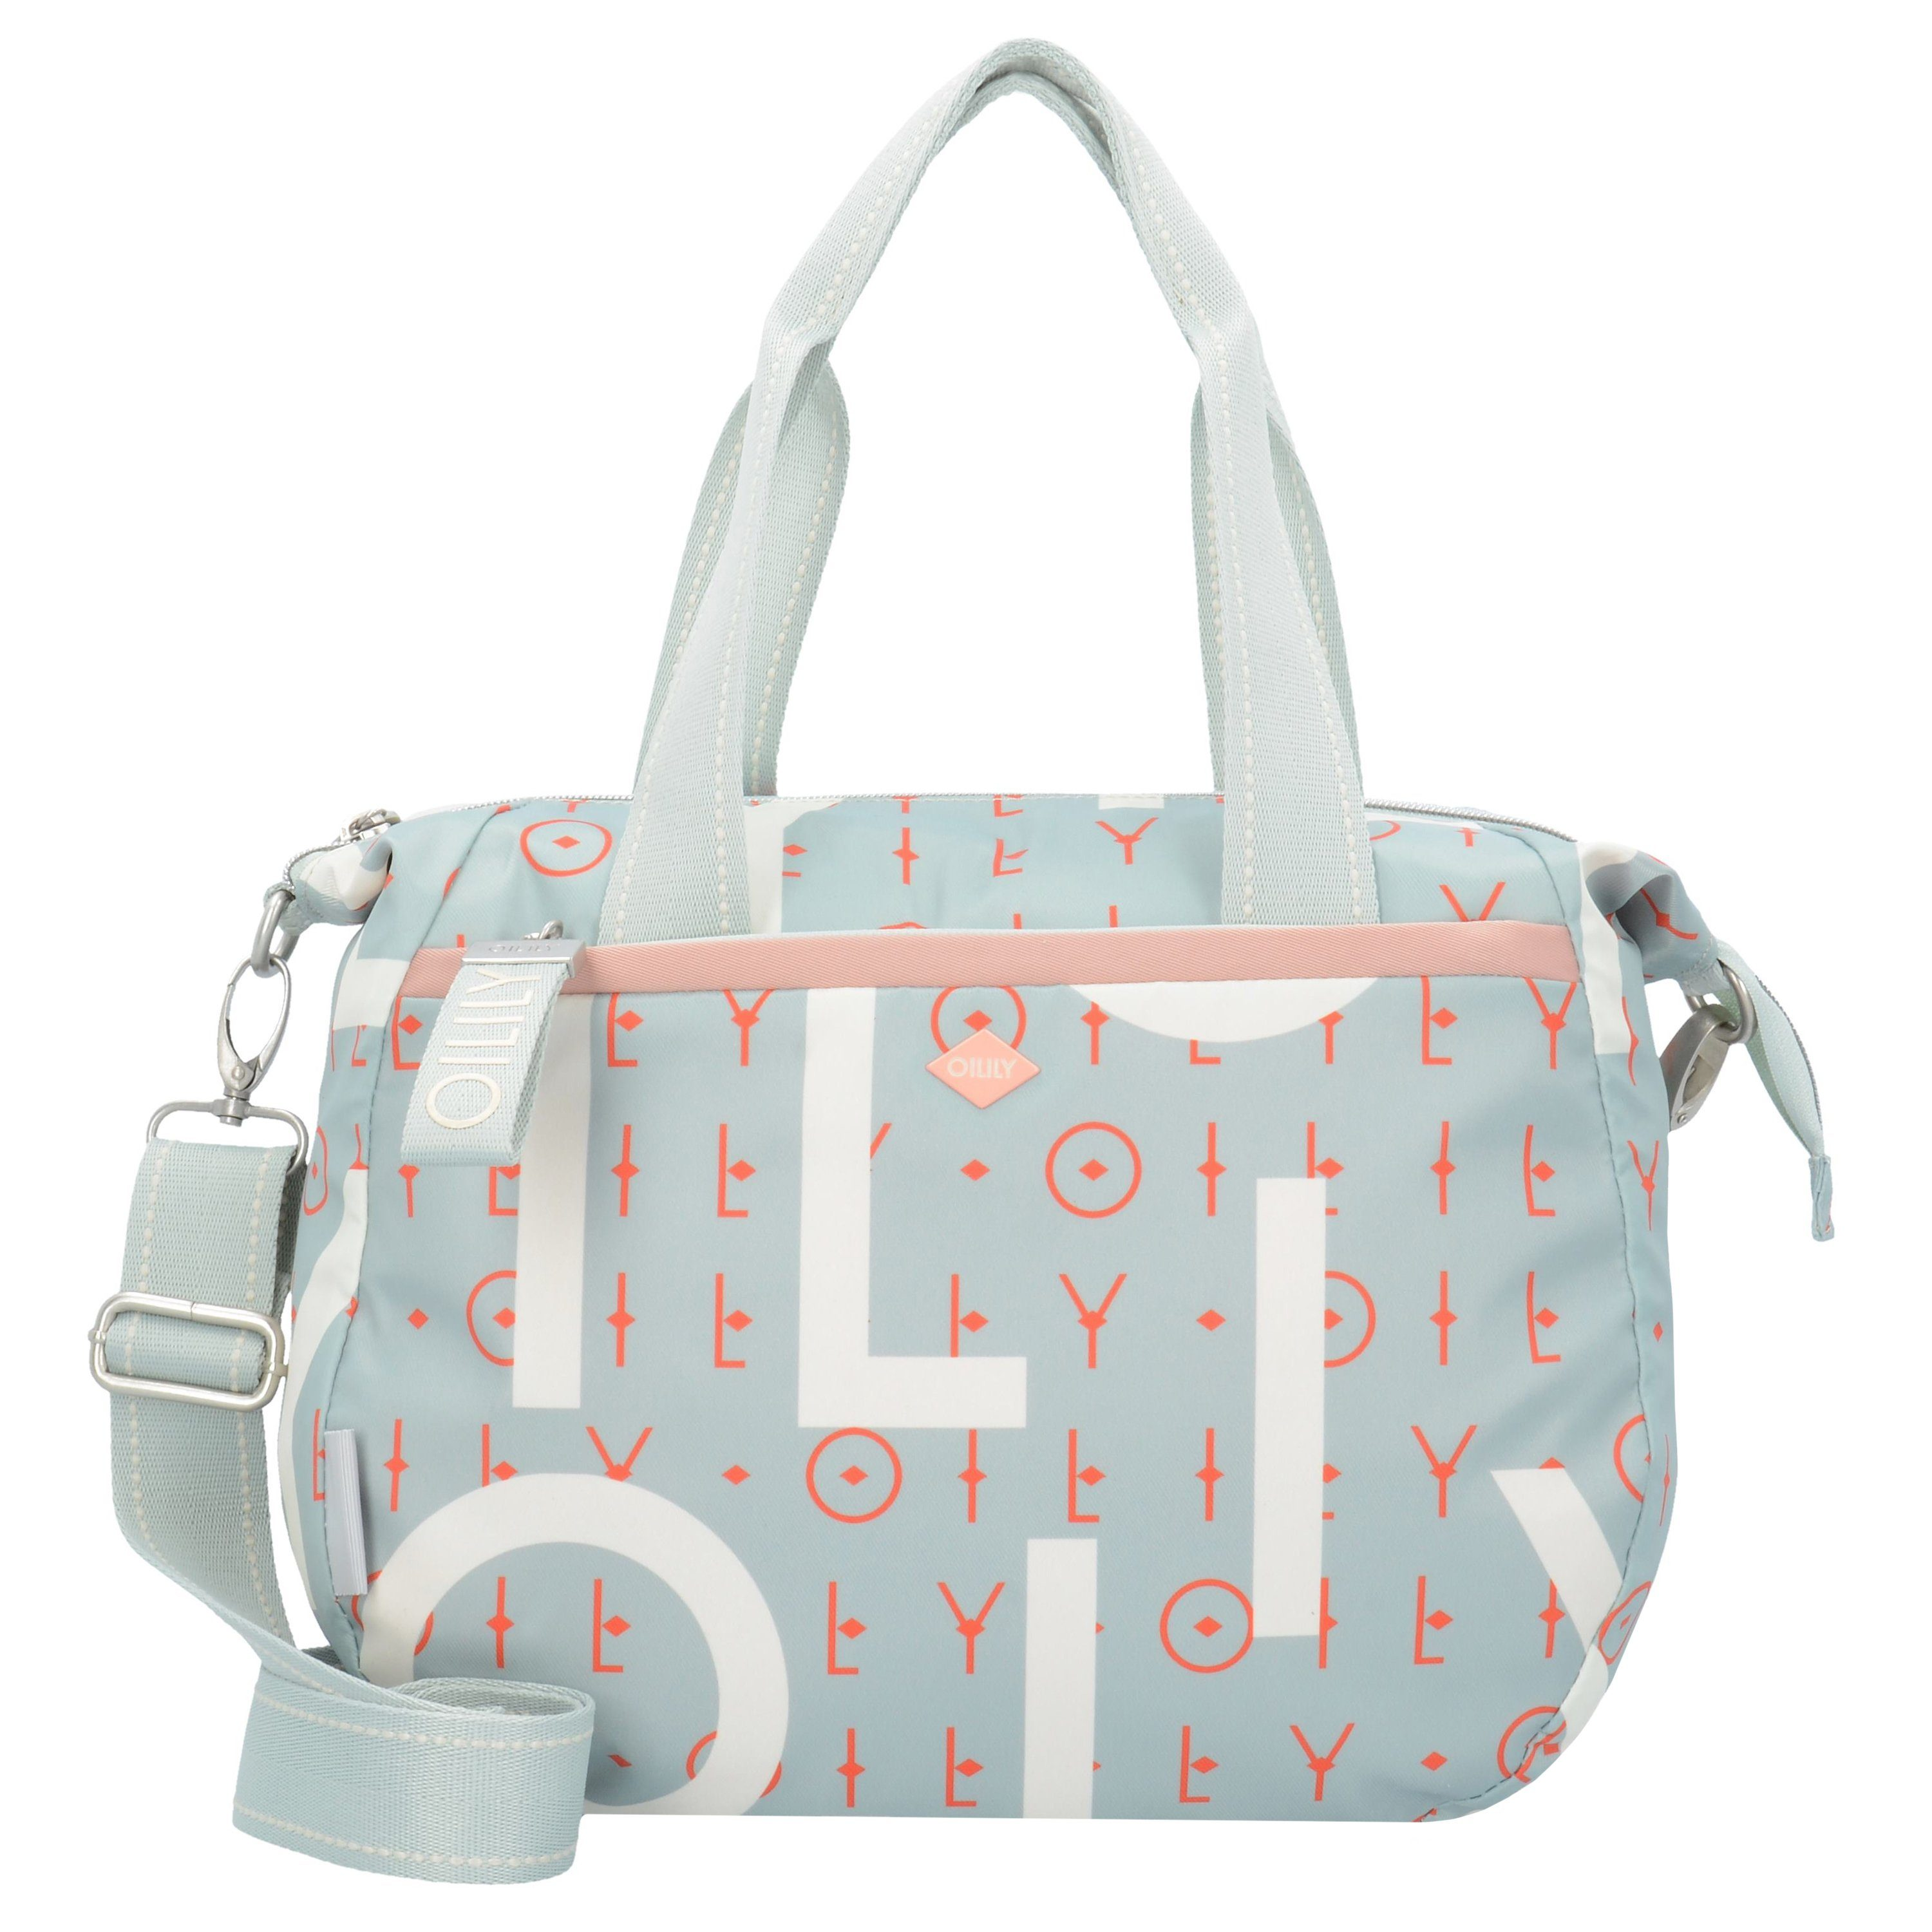 Oilily Groovy Letters Handtasche 26 cm